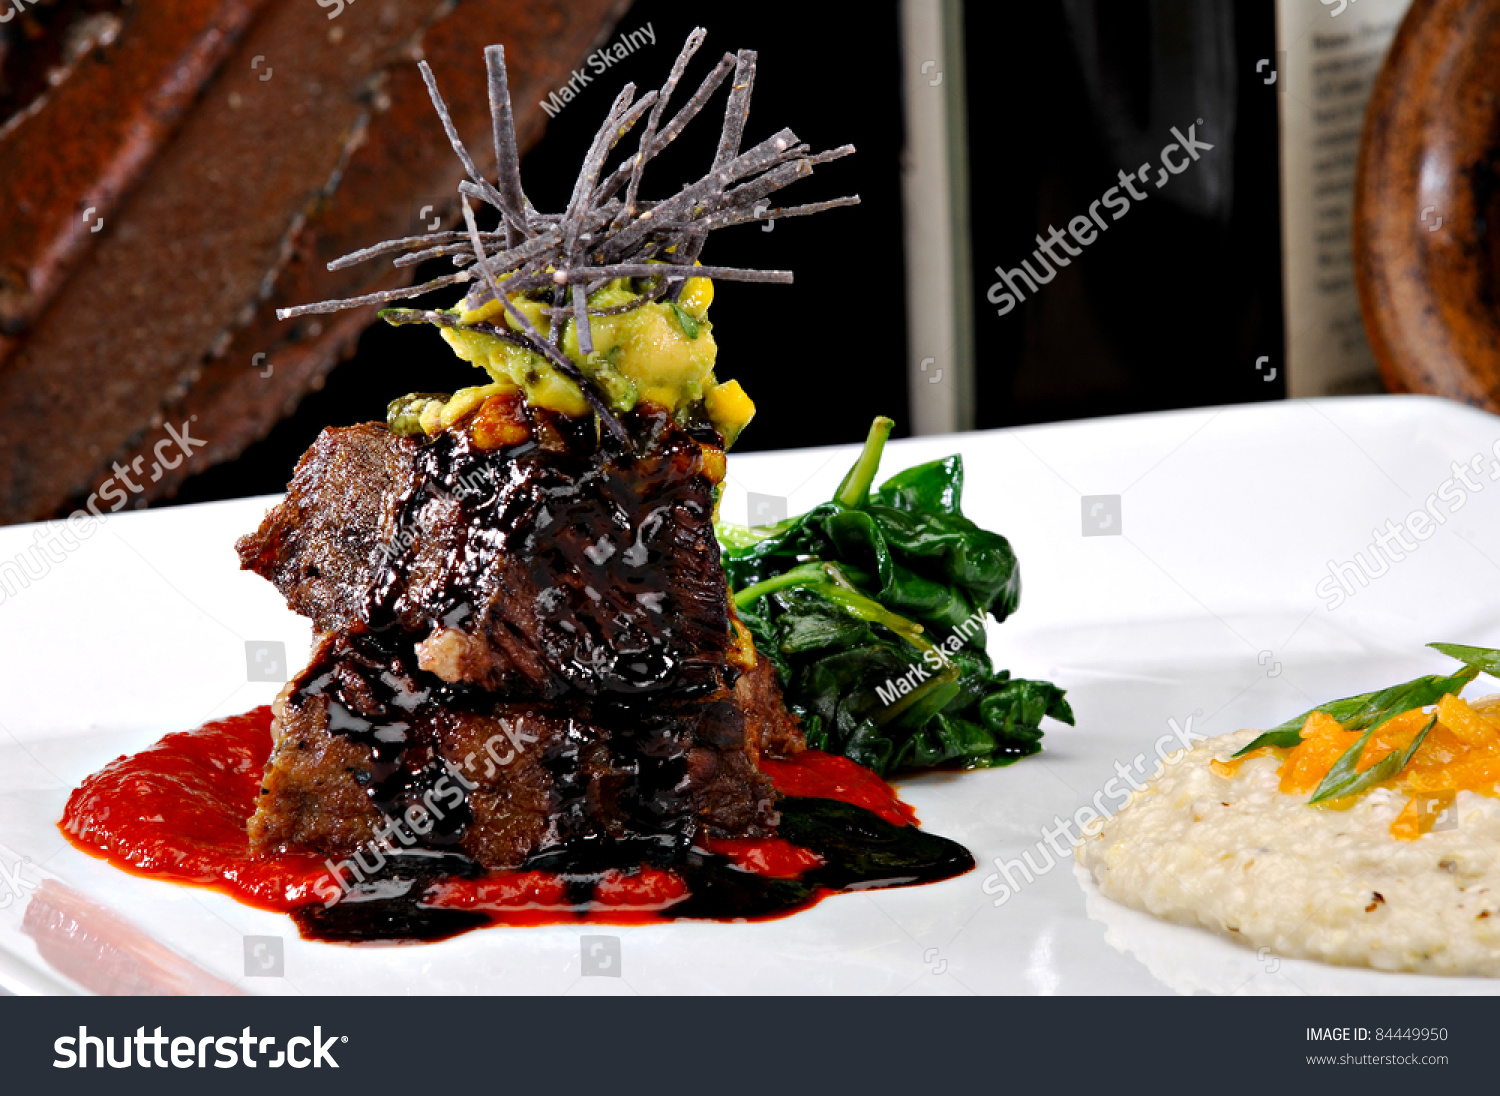 Stacked braised short ribs on a red tomato sauce. Garnished with ...